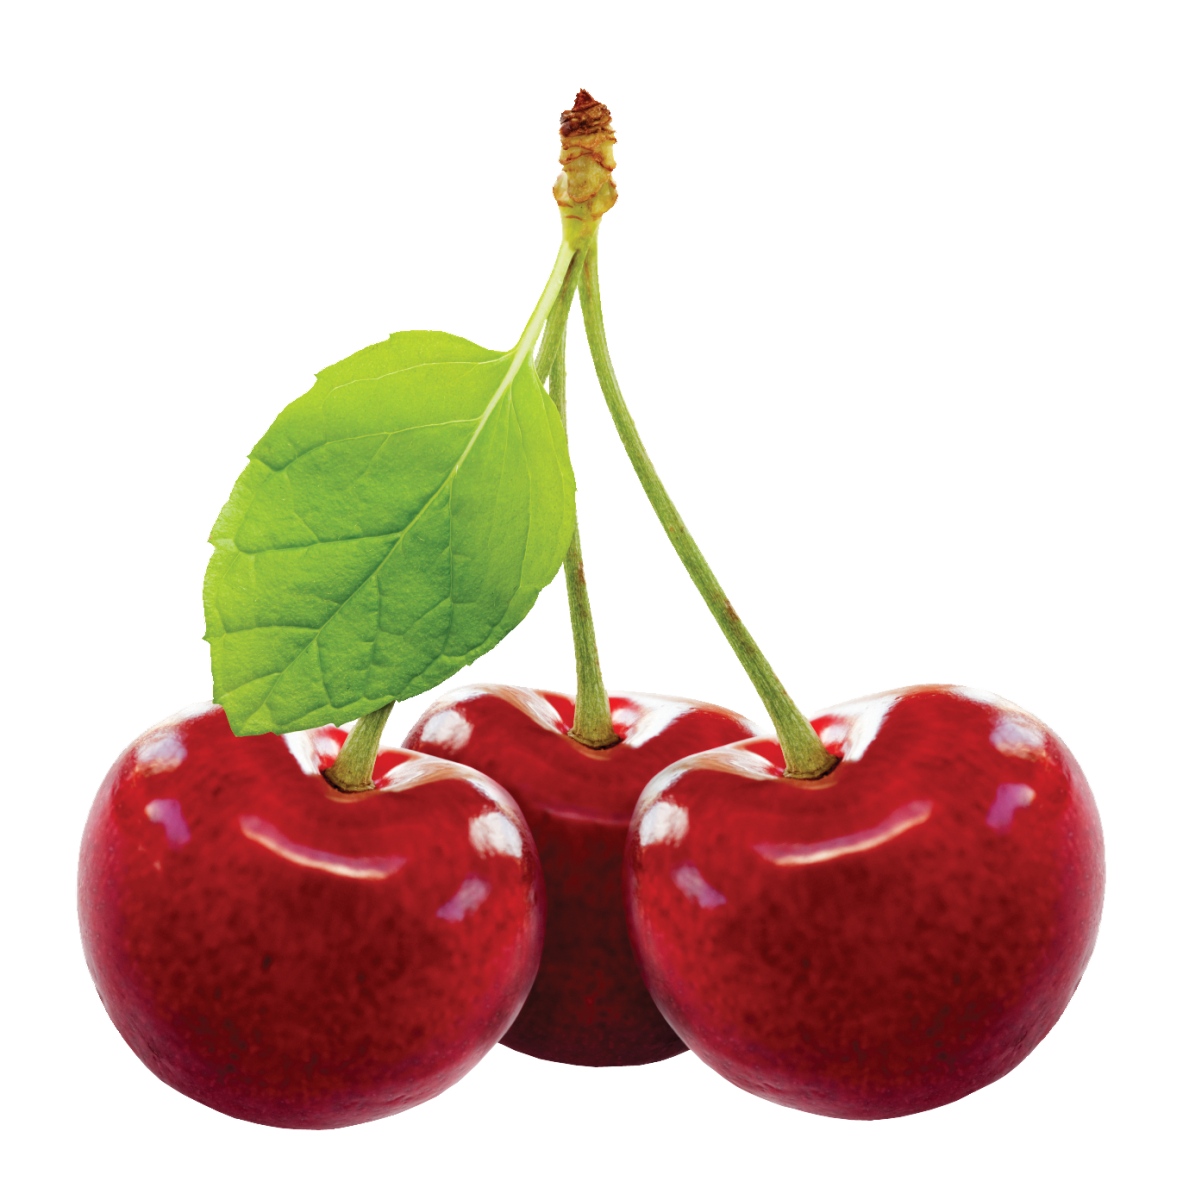 PNG File Name: Cherry PlusPng.com  - Cherry PNG